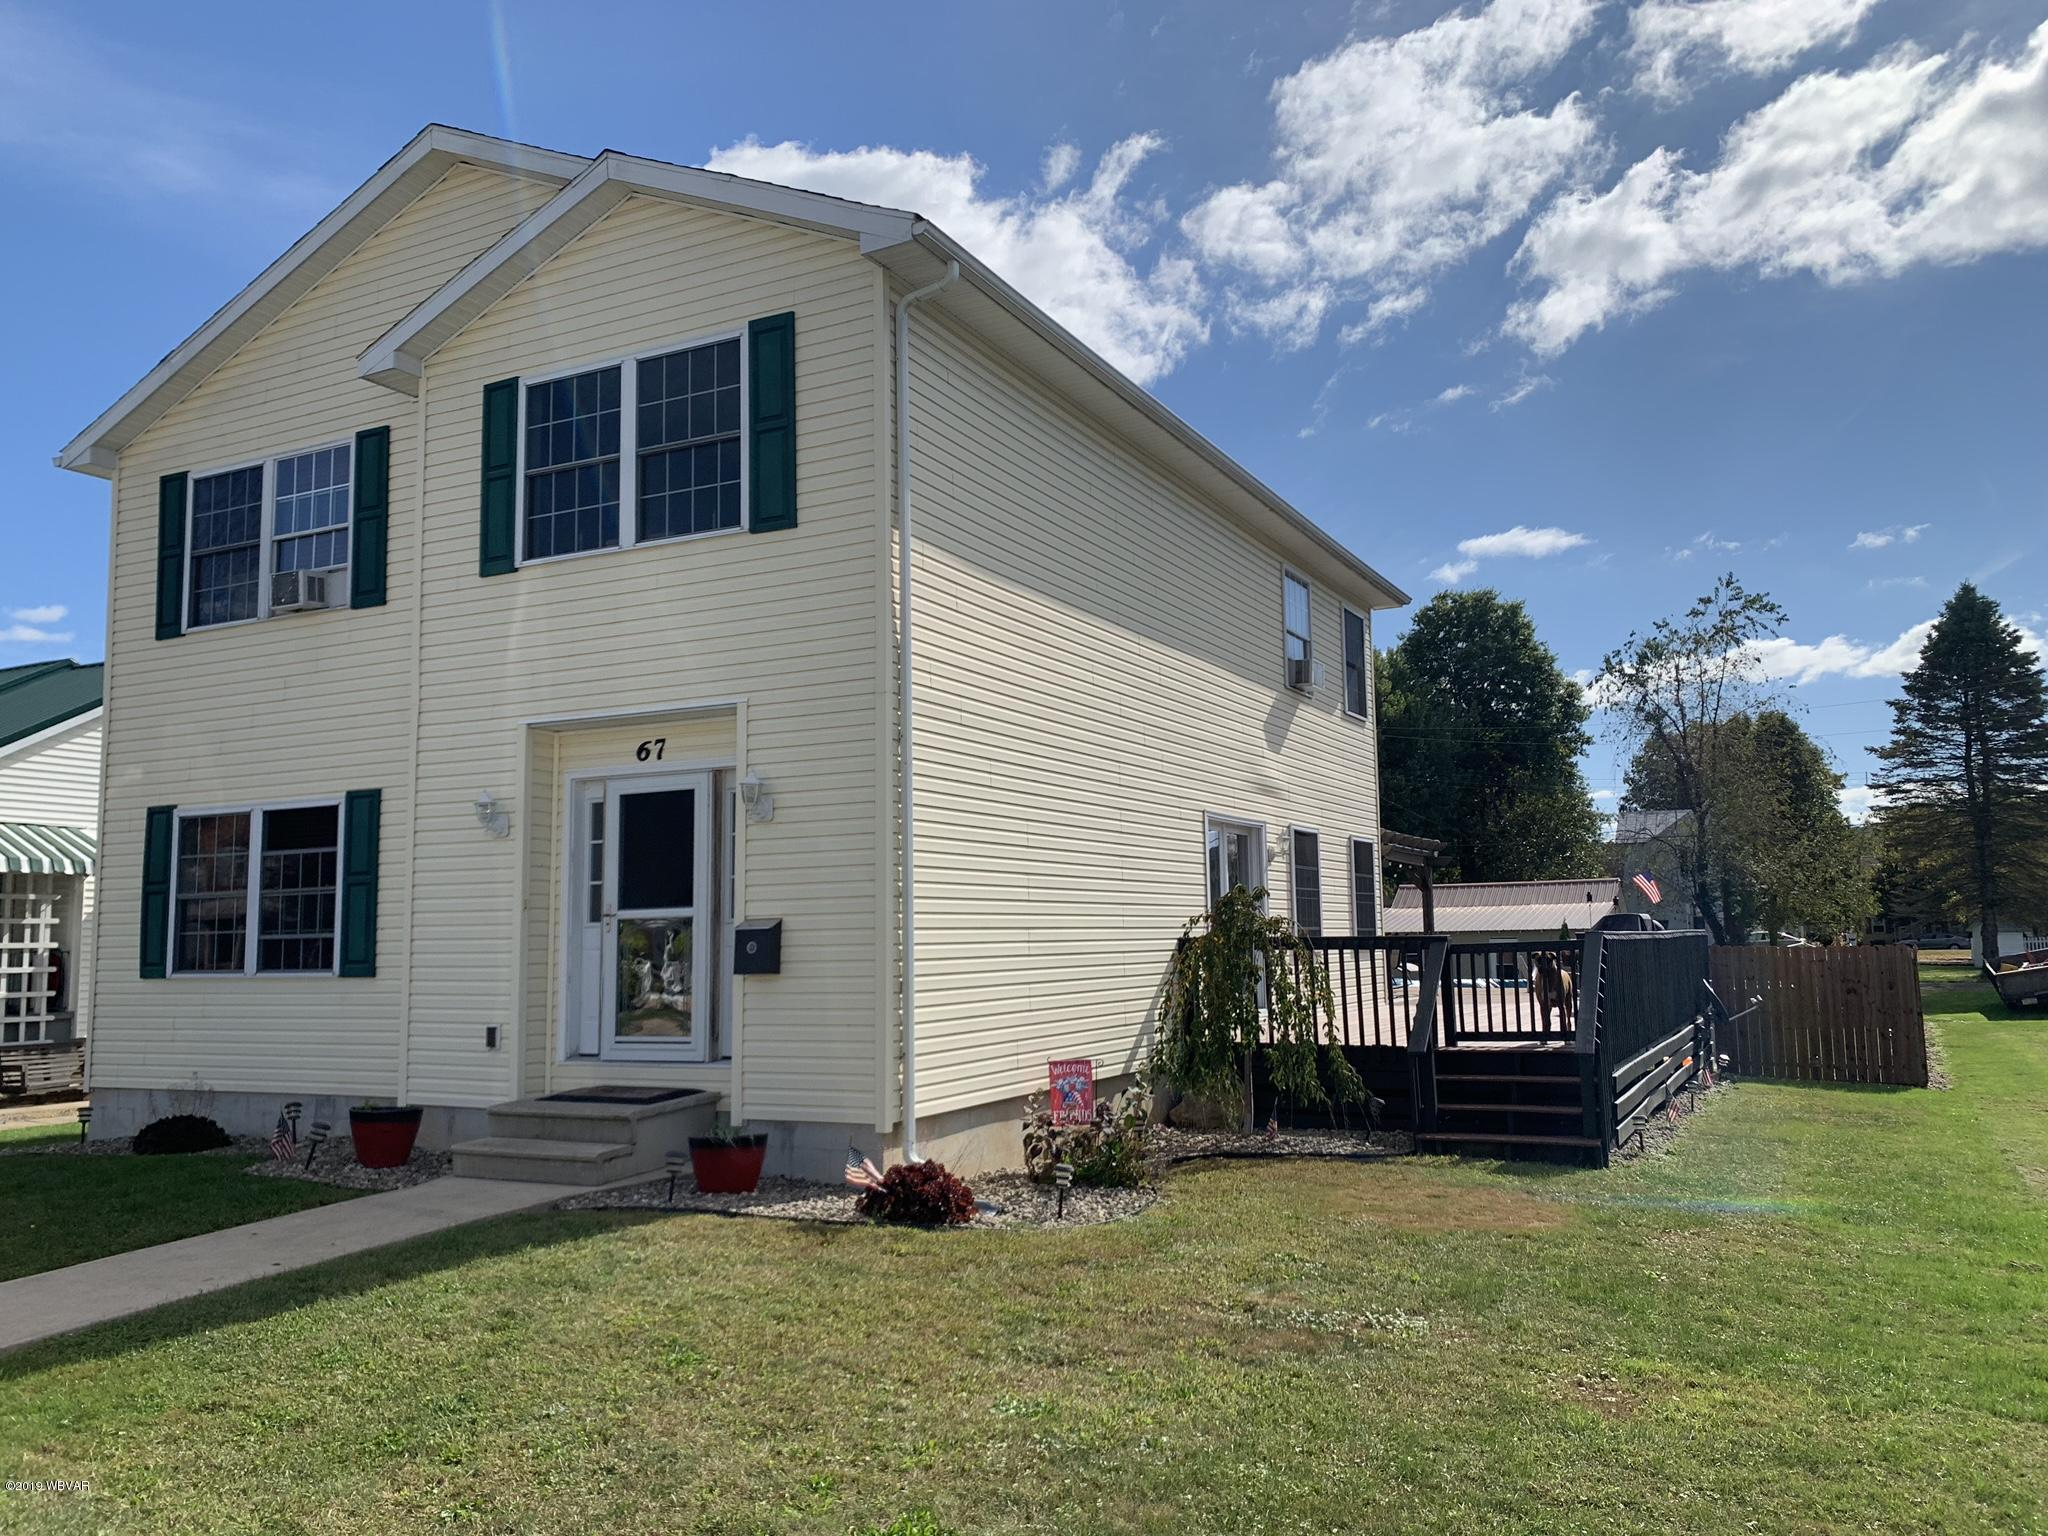 67 THIRD STREET,Hughesville,PA 17737,3 Bedrooms Bedrooms,2 BathroomsBathrooms,Residential,THIRD,WB-88846